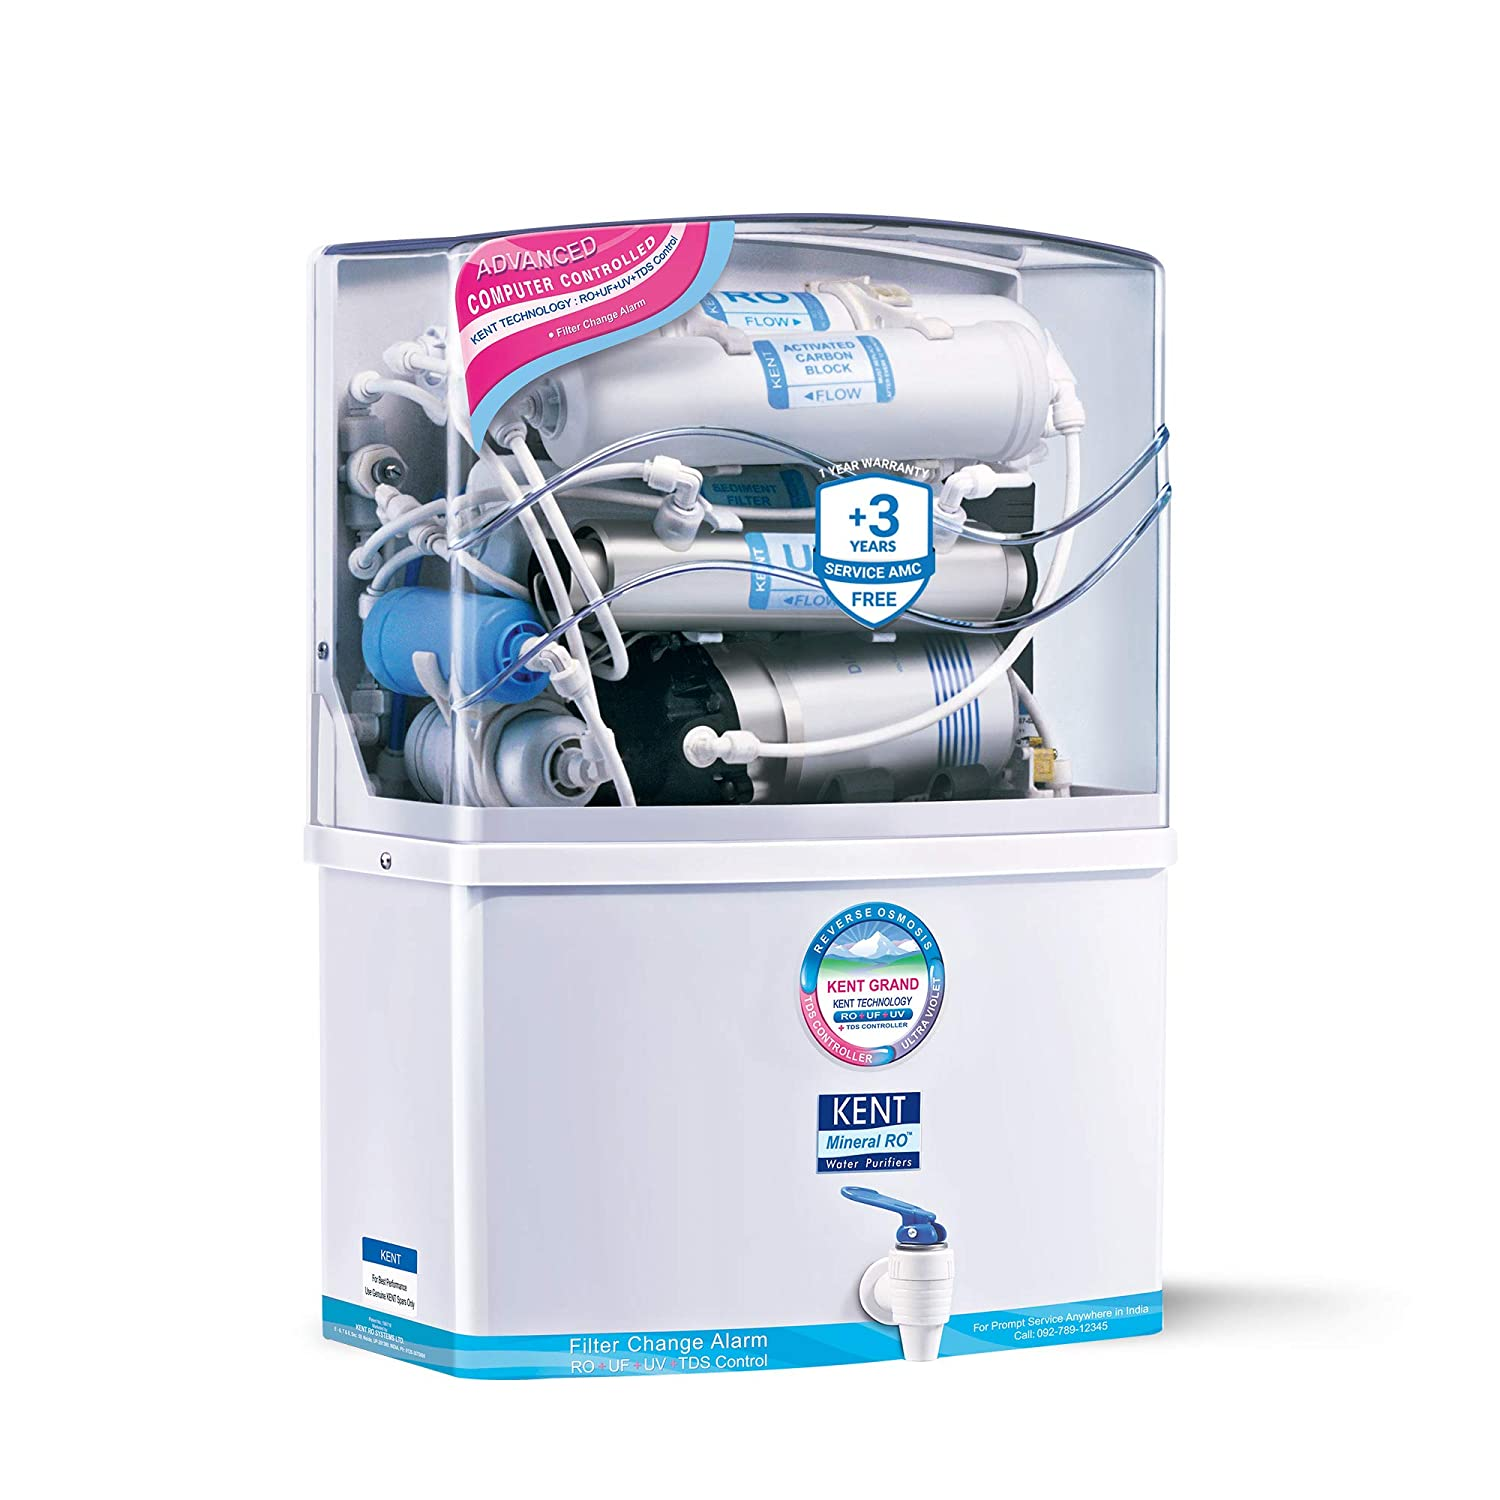 KENT Grand RO + UV/UF + TDS Over All Best Water Purifier